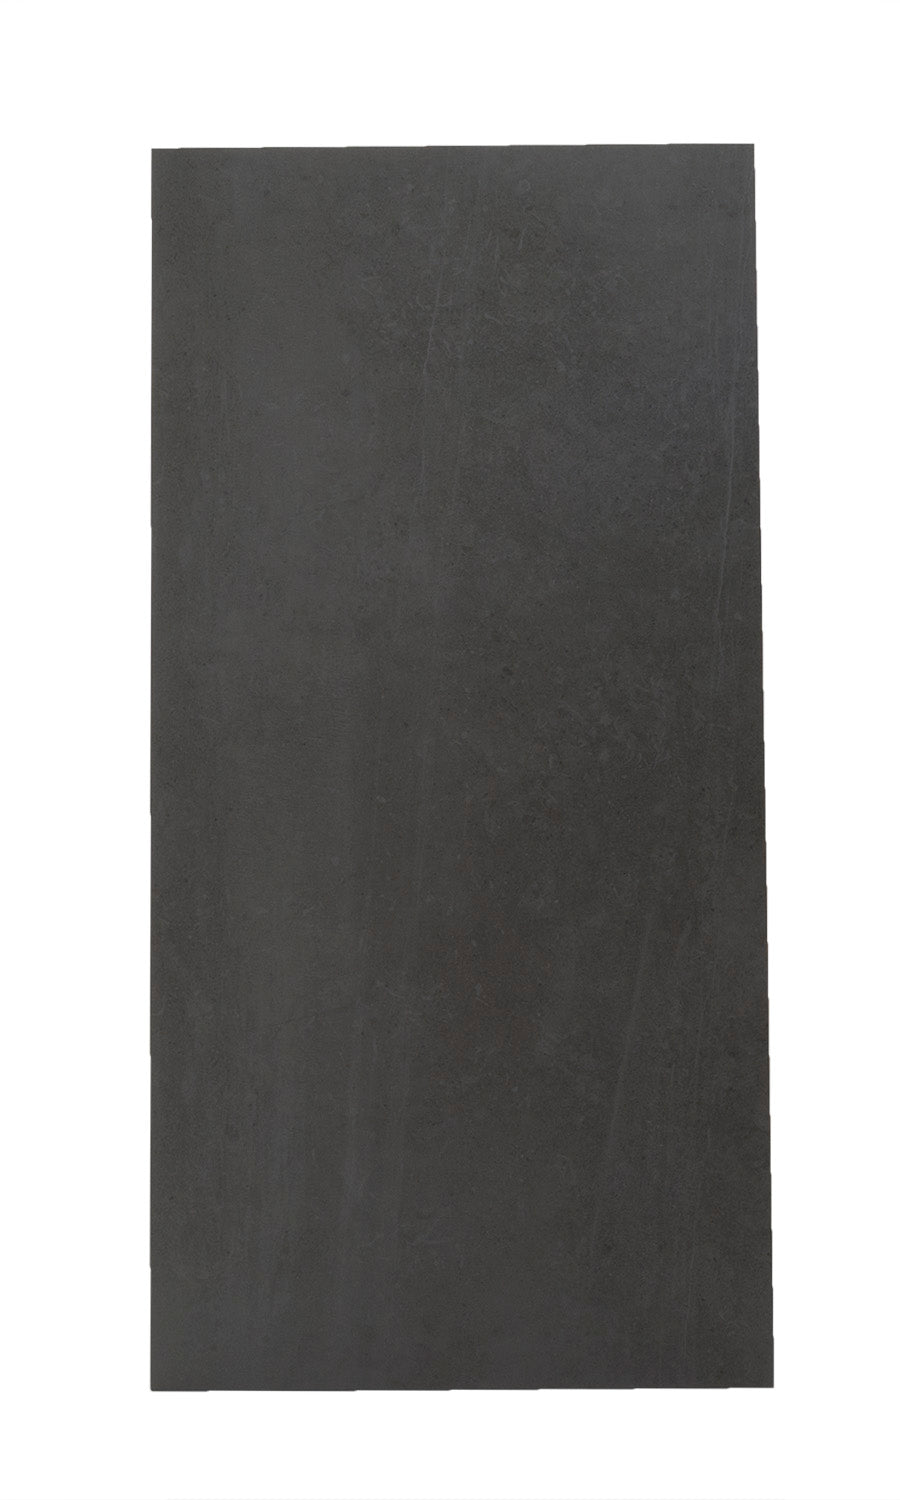 Lg Light Grey Stone Tile